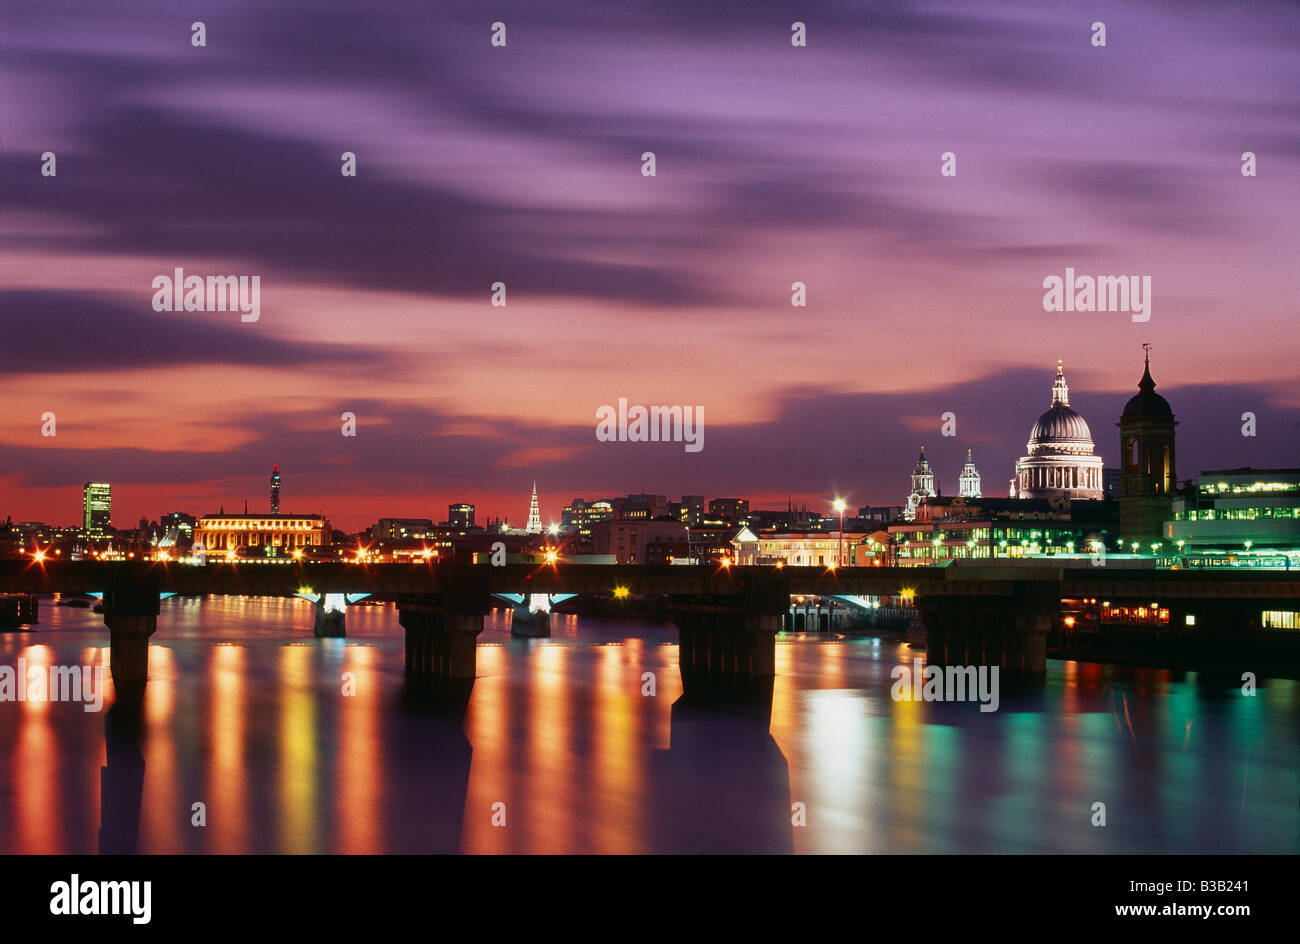 St Pauls Cathedral and the River Thames at dusk, London, England, UK Stock Photo